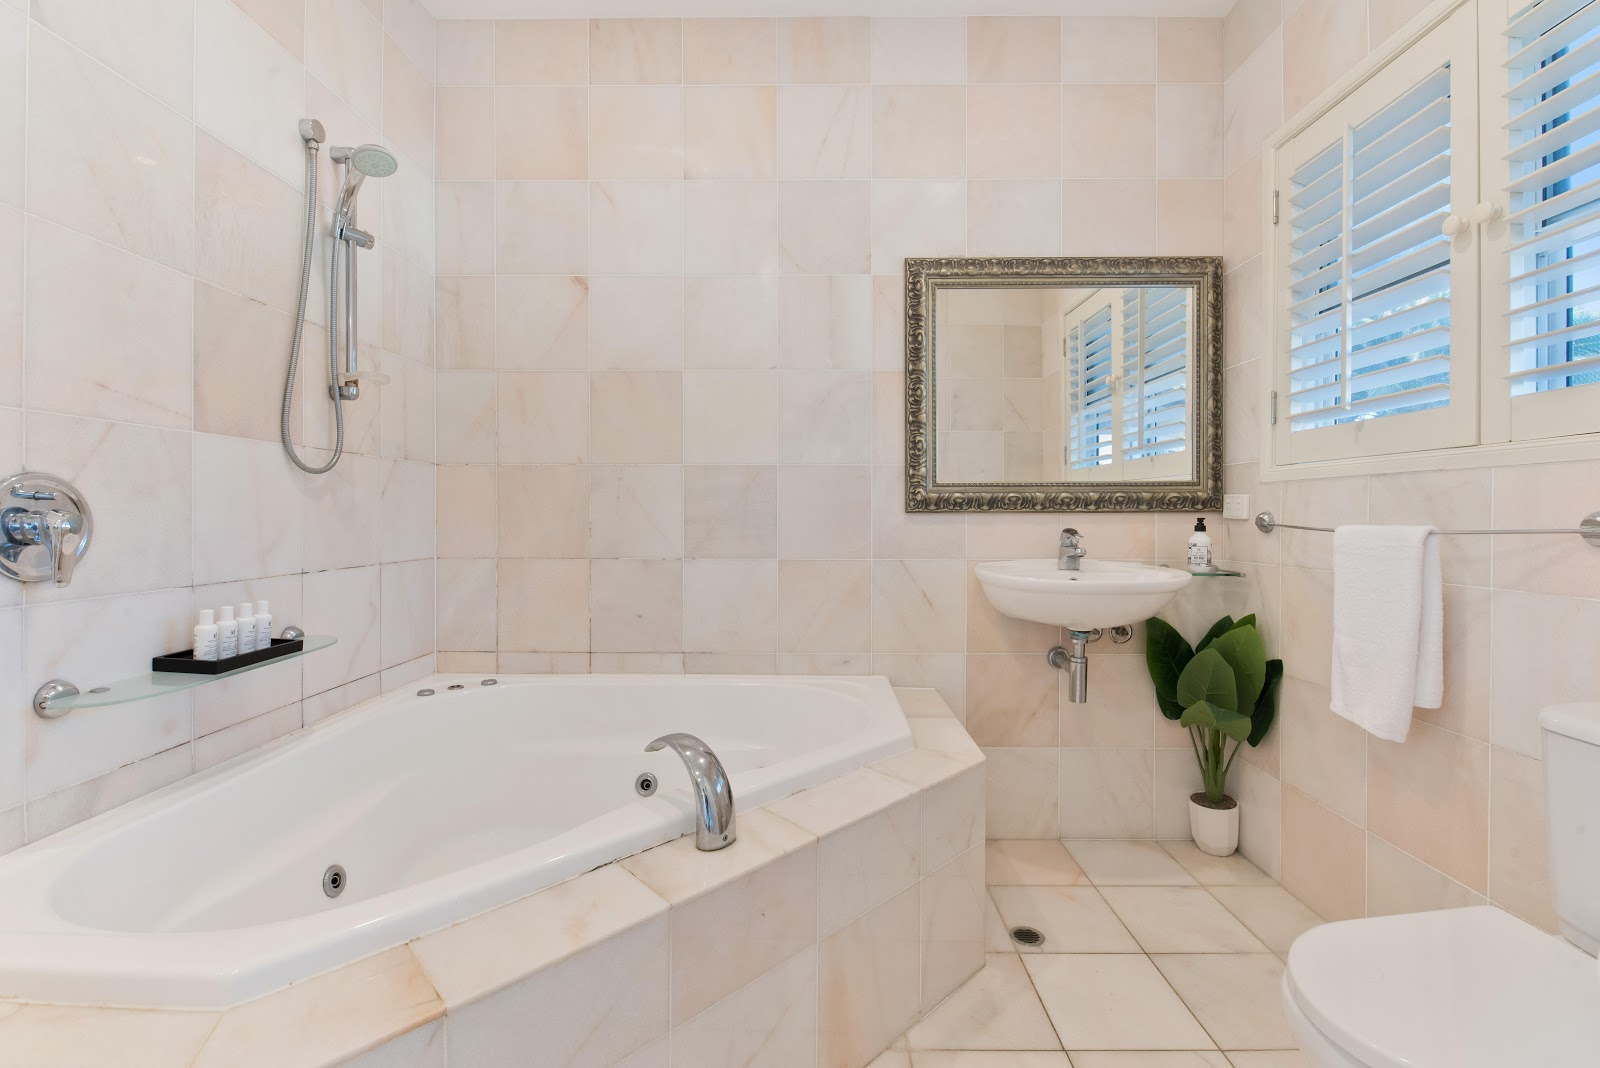 bathroom with large soaker tub.